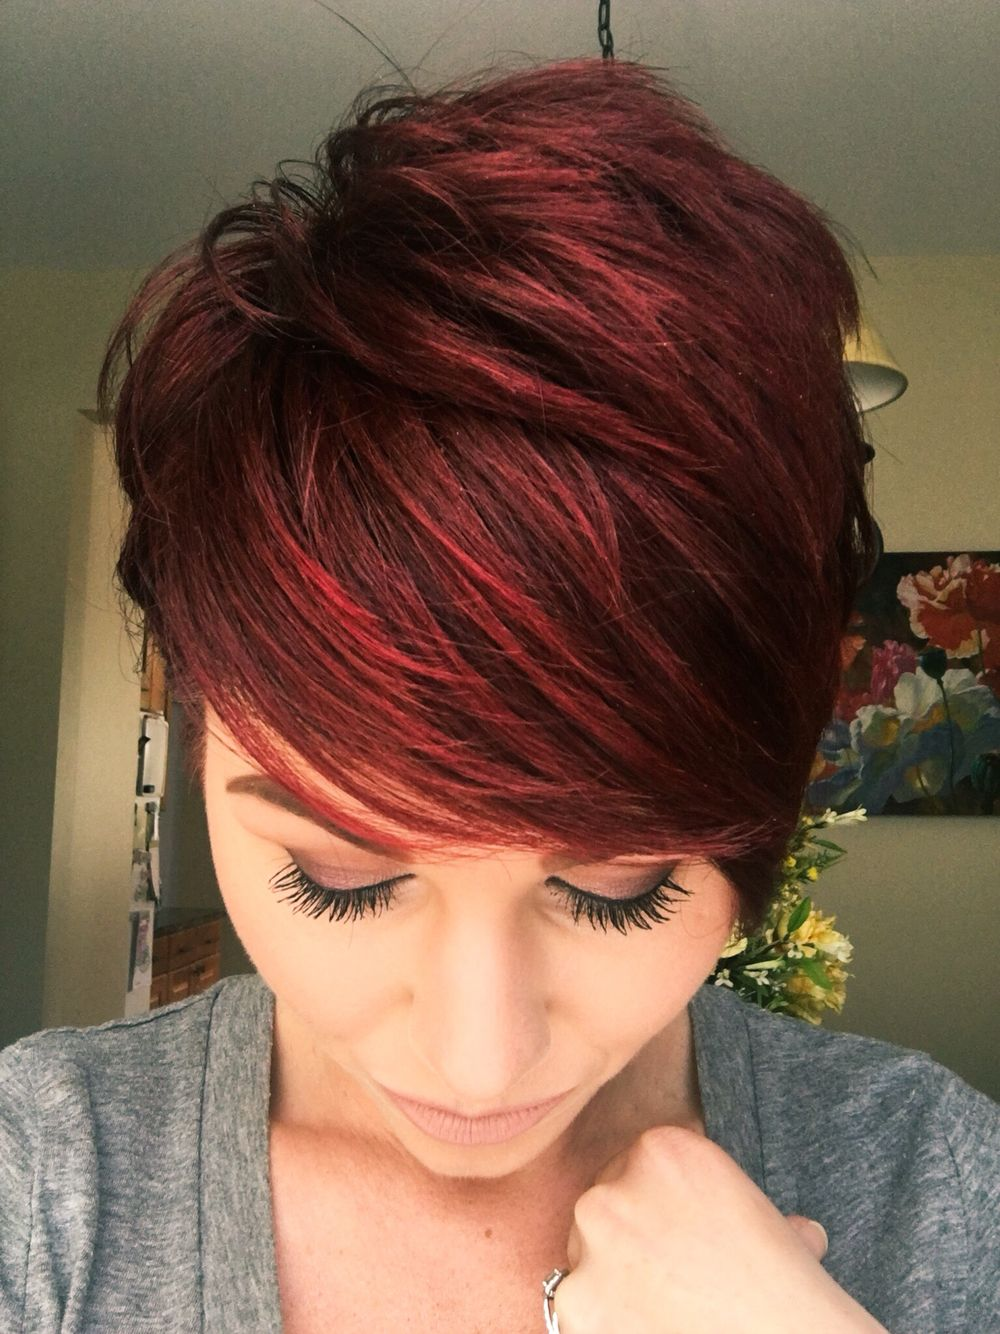 Groovy 360 Of Pixie Cut And Also A Good Transition Cut For When You Want Hairstyle Inspiration Daily Dogsangcom